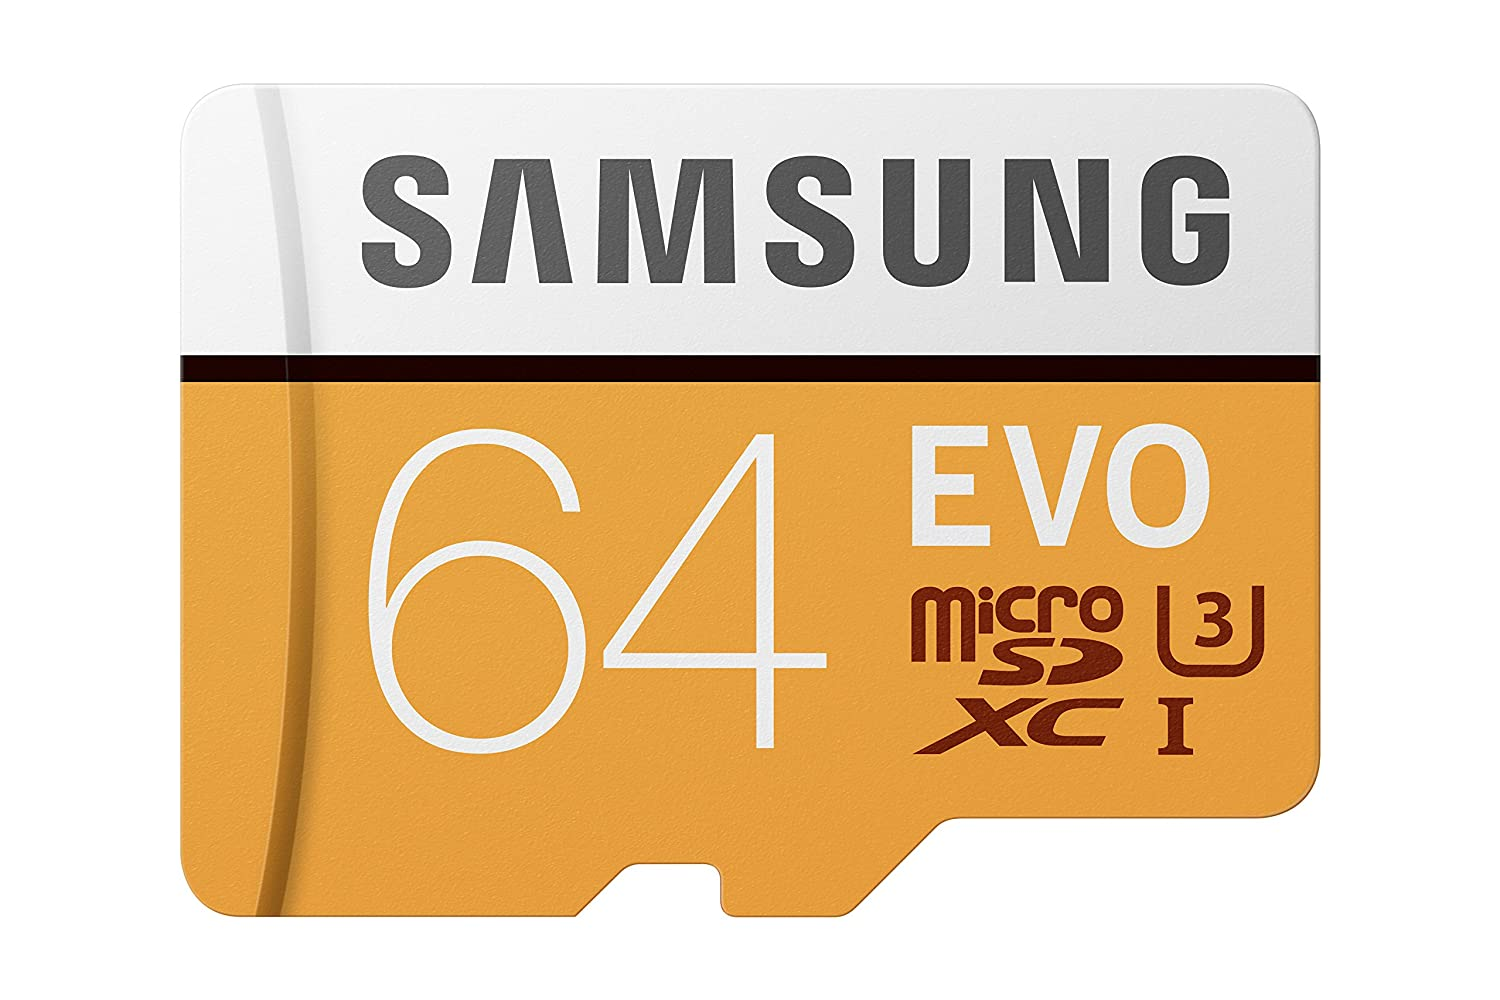 ae89d125 Size:64GB Simply the right card. The Samsung 64GB microSD EVO memory card  provides the reliability and performance you expect for your devices.